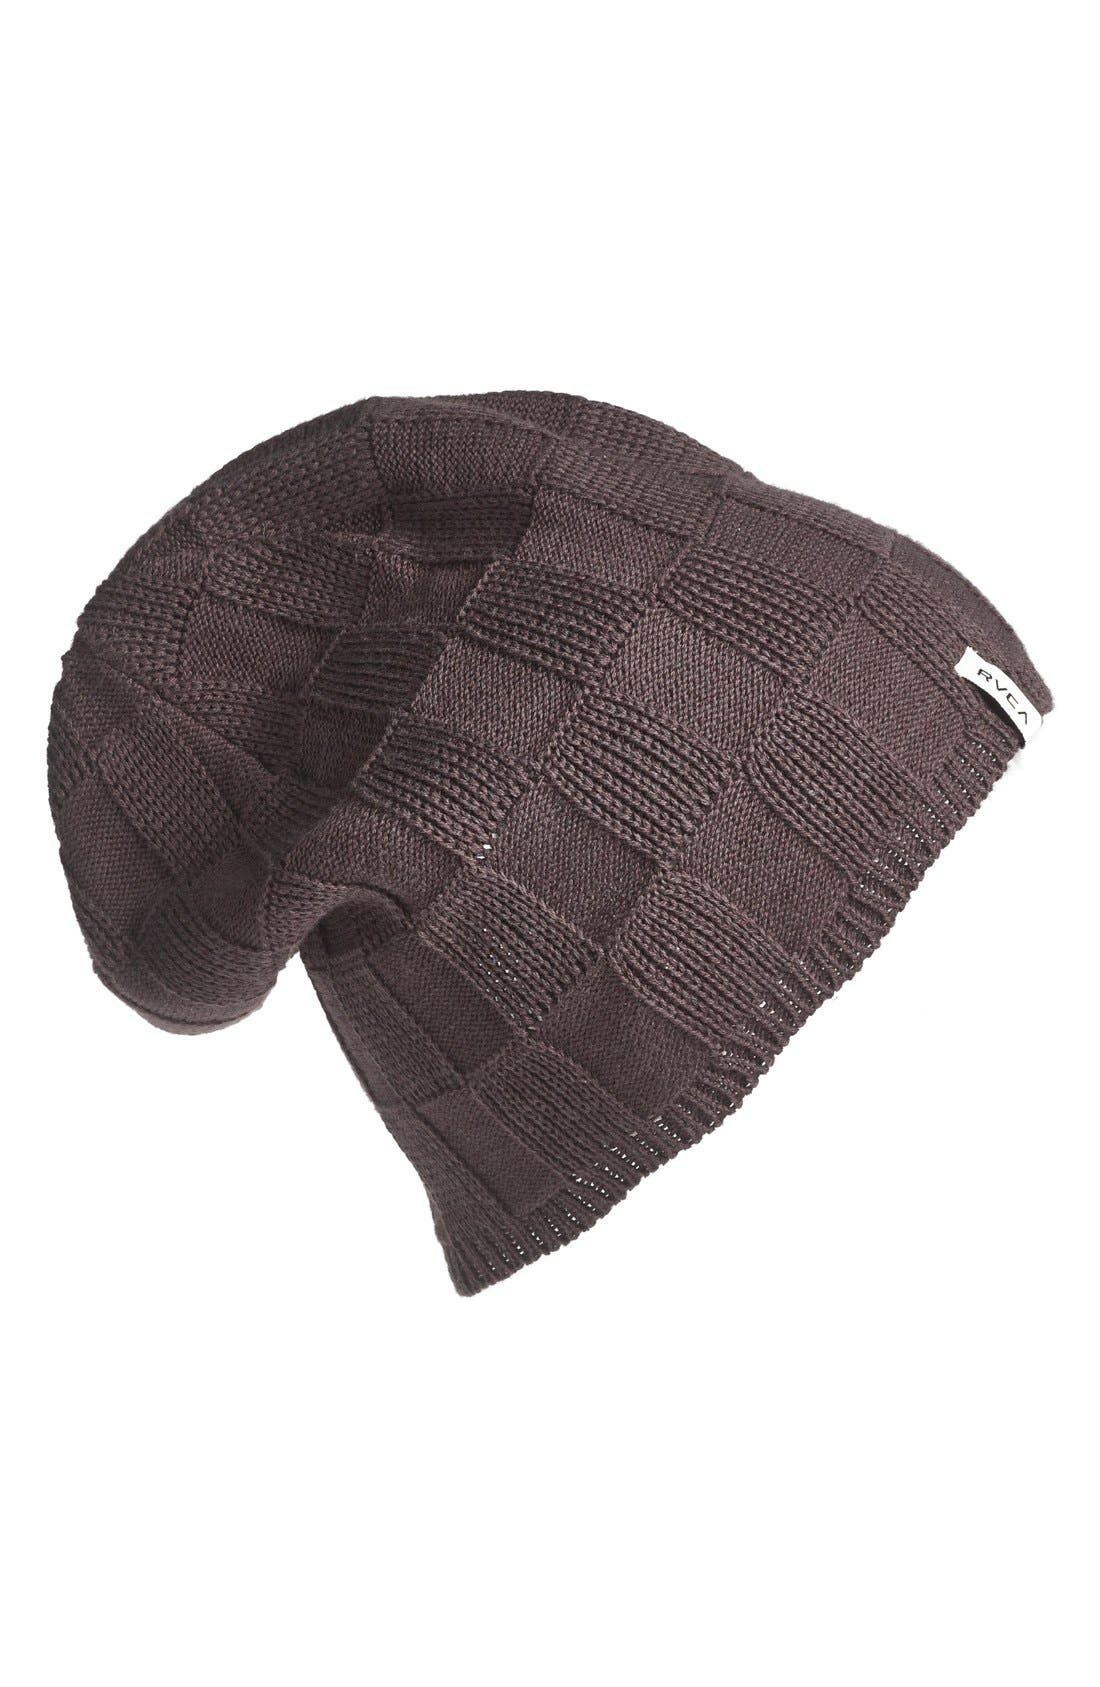 Alternate Image 1 Selected - RVCA 'Checked Out' Beanie